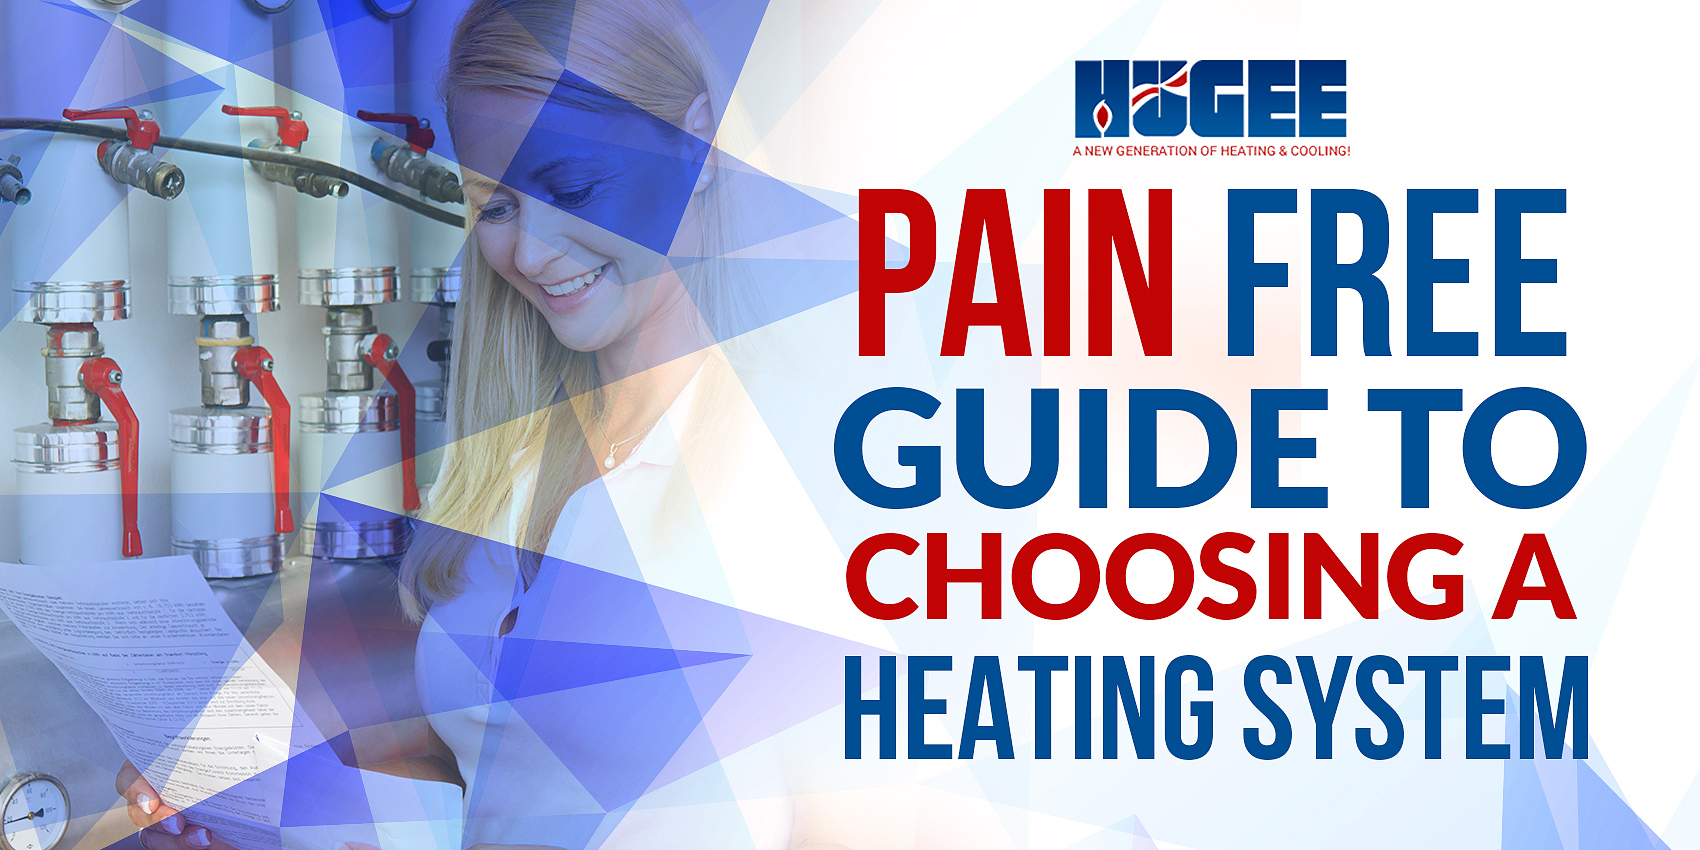 Pain-Free Guide to Choosing a Heating System